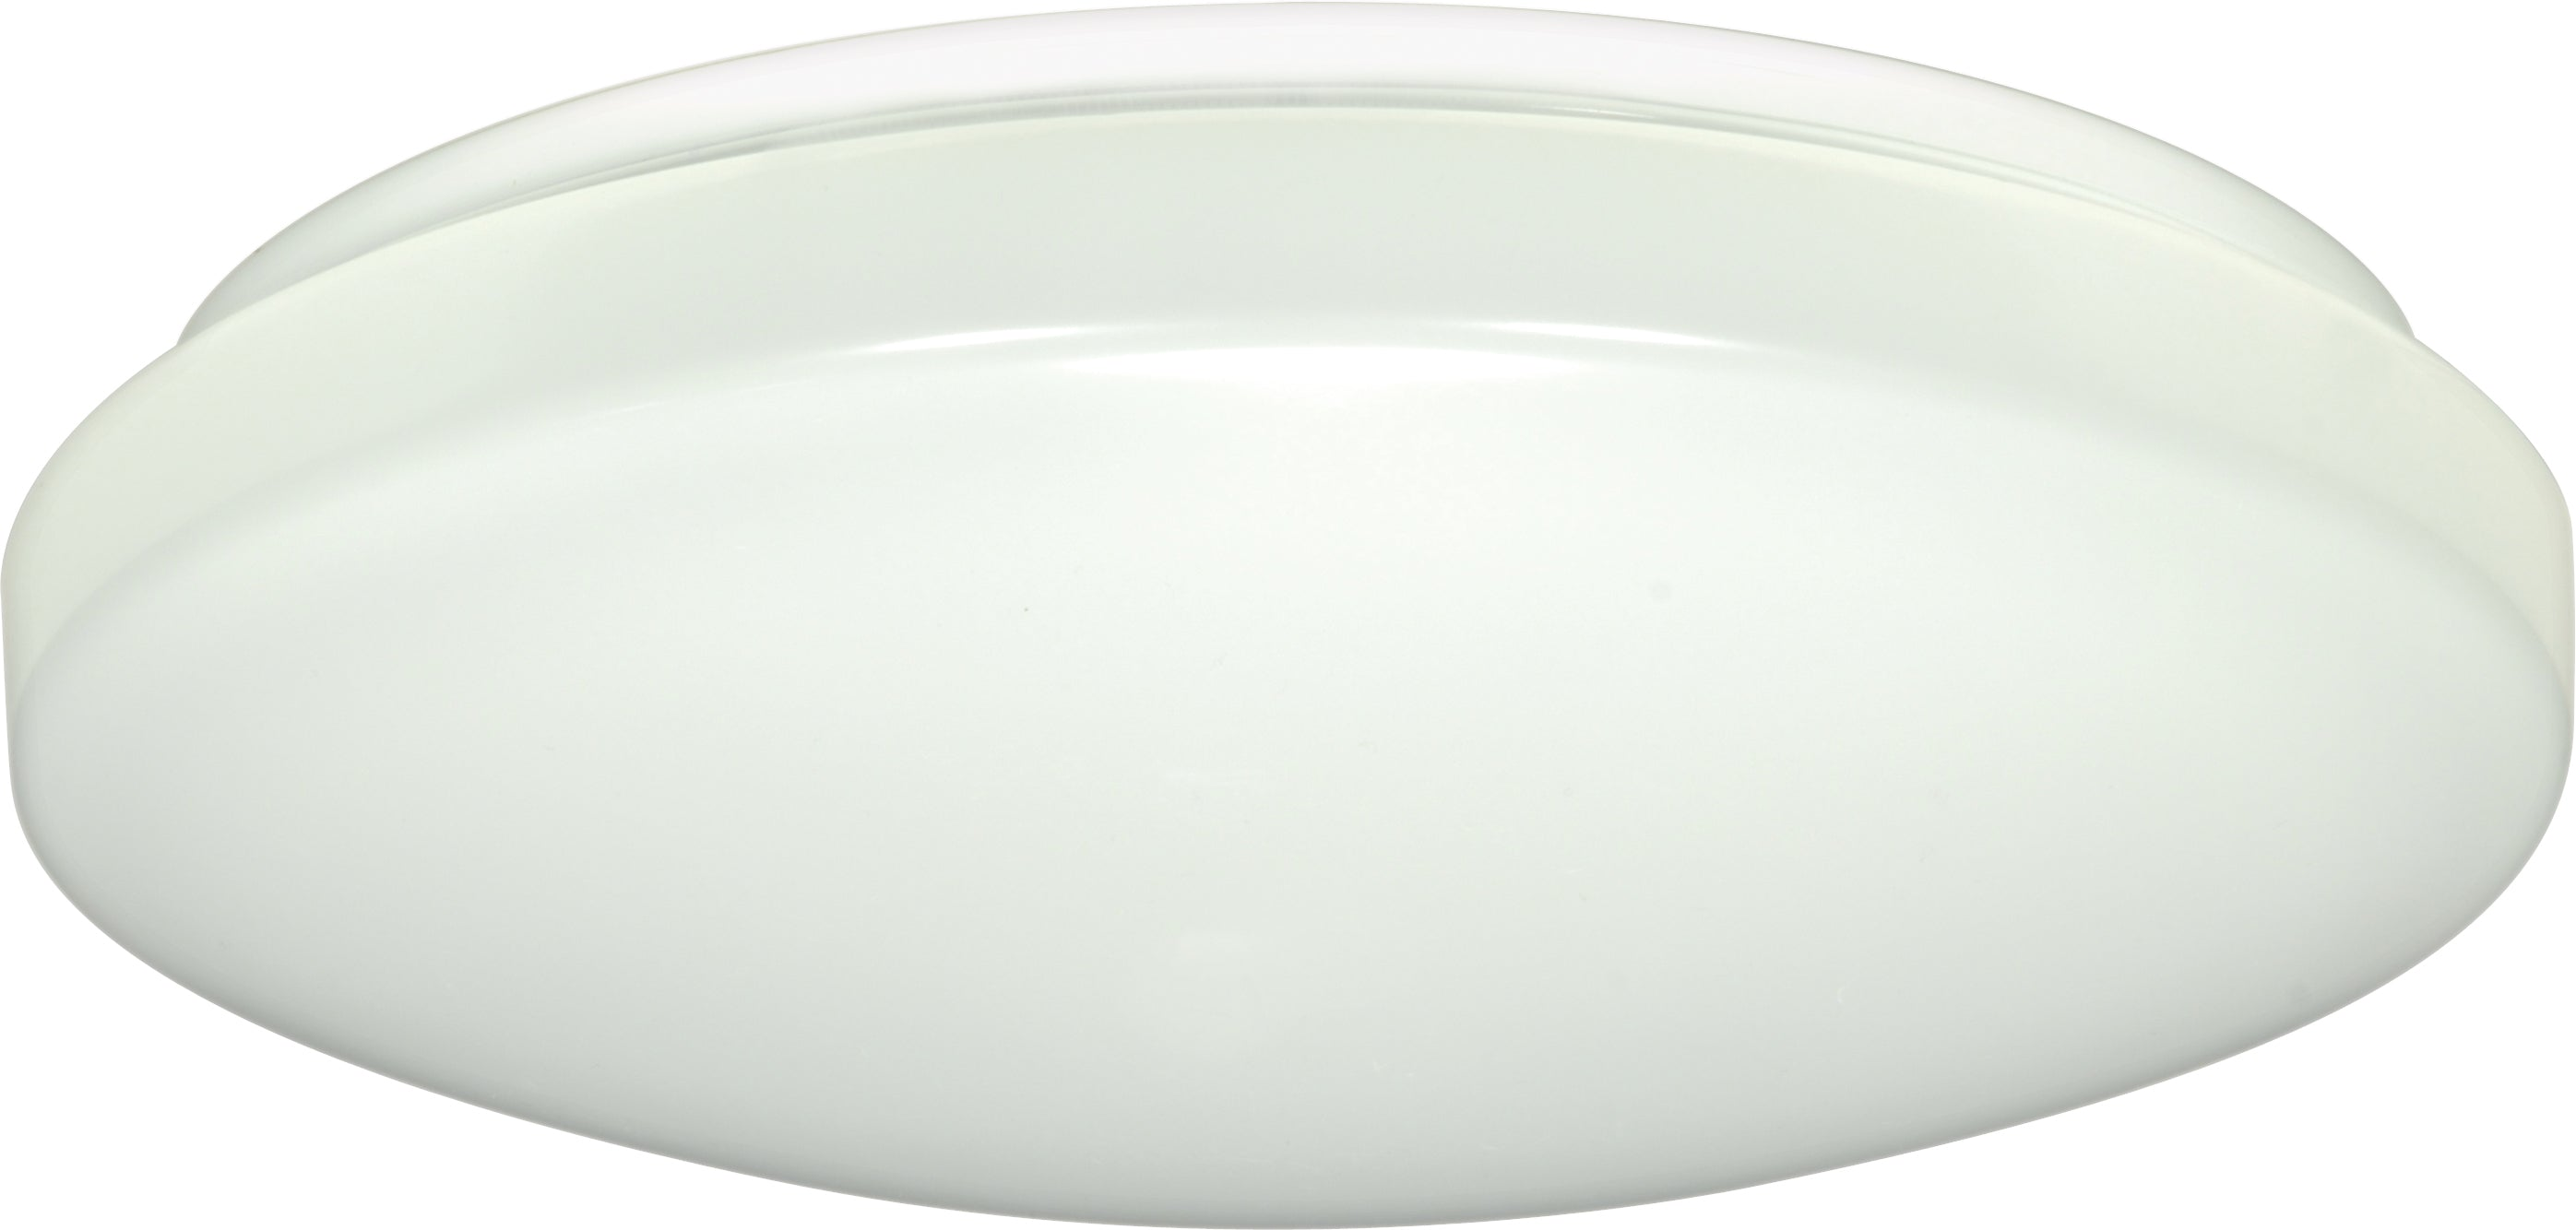 "Nuvo 1-Light 11"" Flush Mounted LED Light Fixture White Finish 120-277v 3000k"